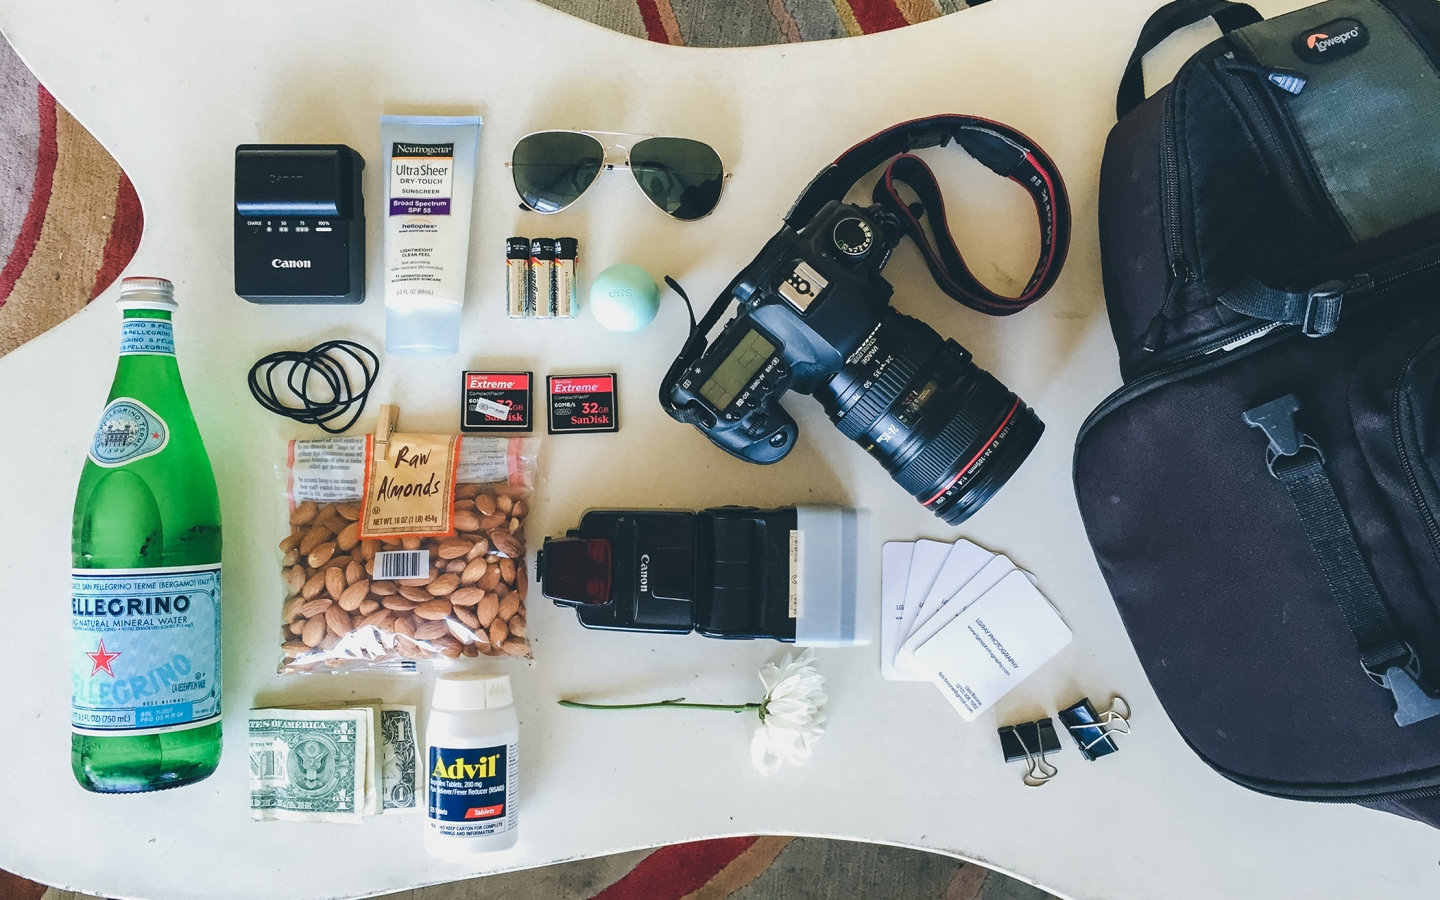 LIZABOONE 1440x900 Whats in my Bag | Liza Boone